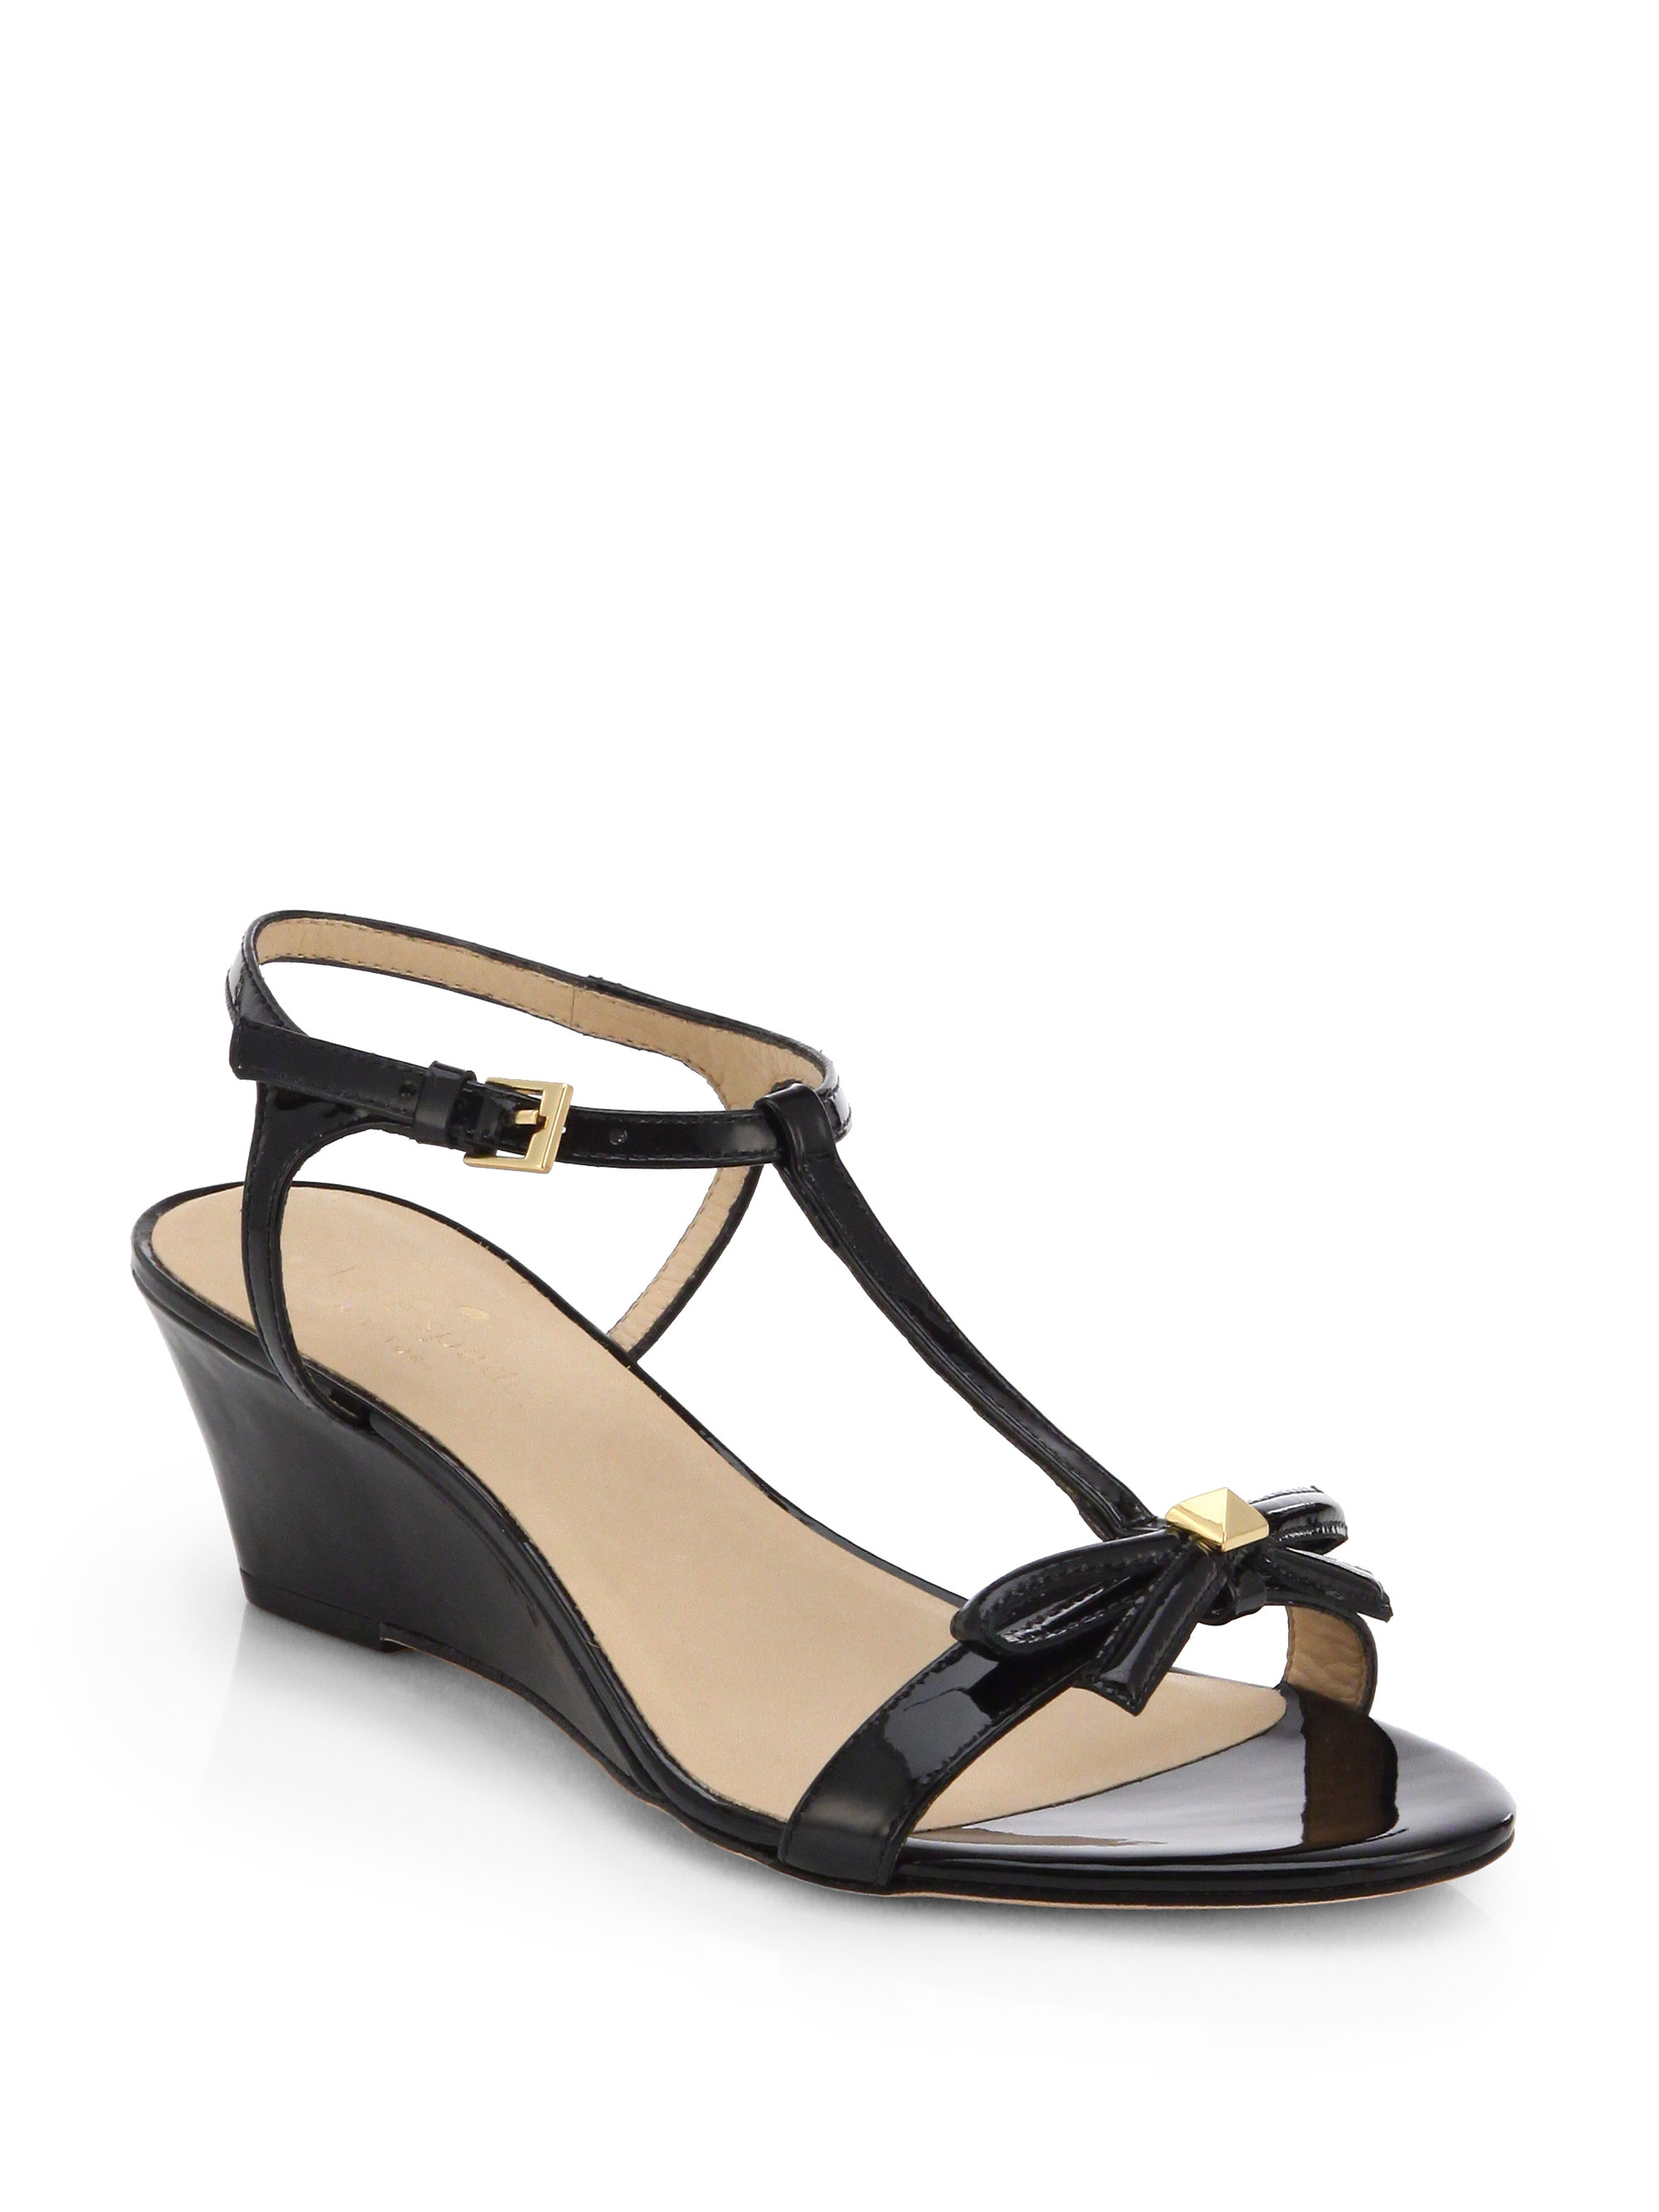 Kate Spade Donna Patent Leather Wedge